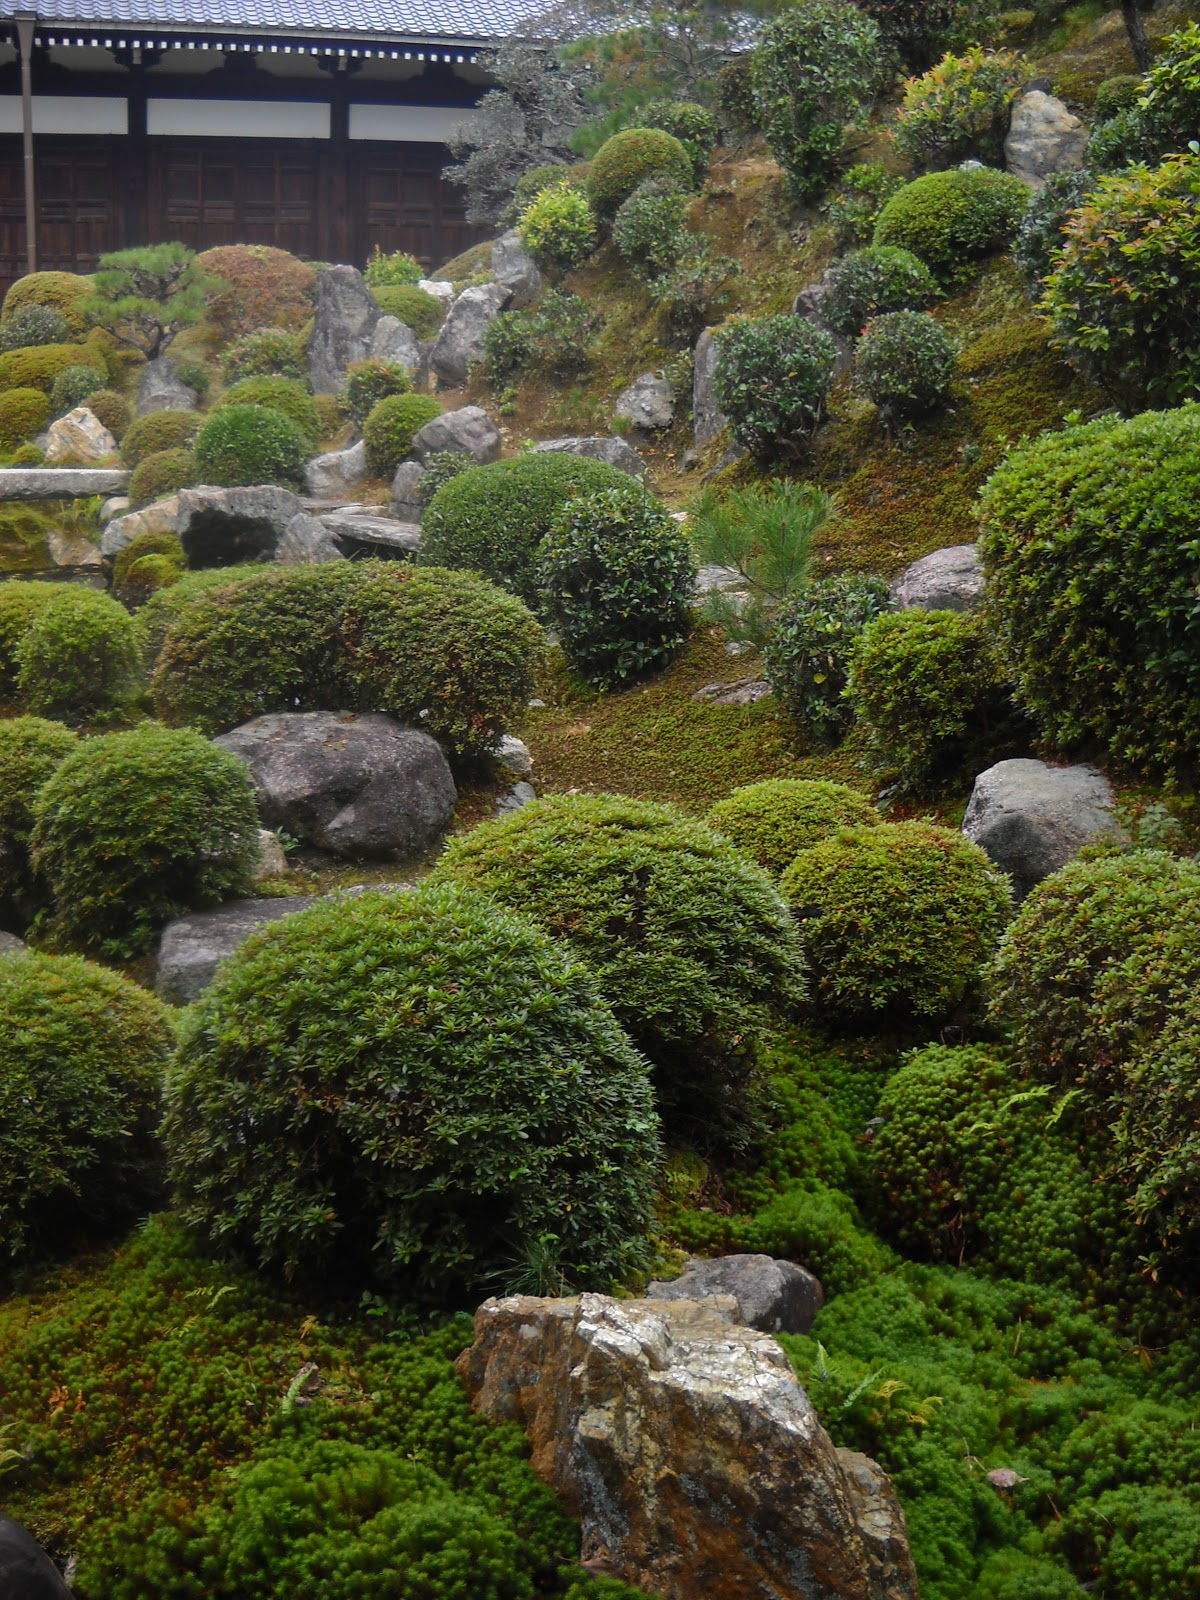 The Traveling Gardener: Strolling Through Kyoto's Temple